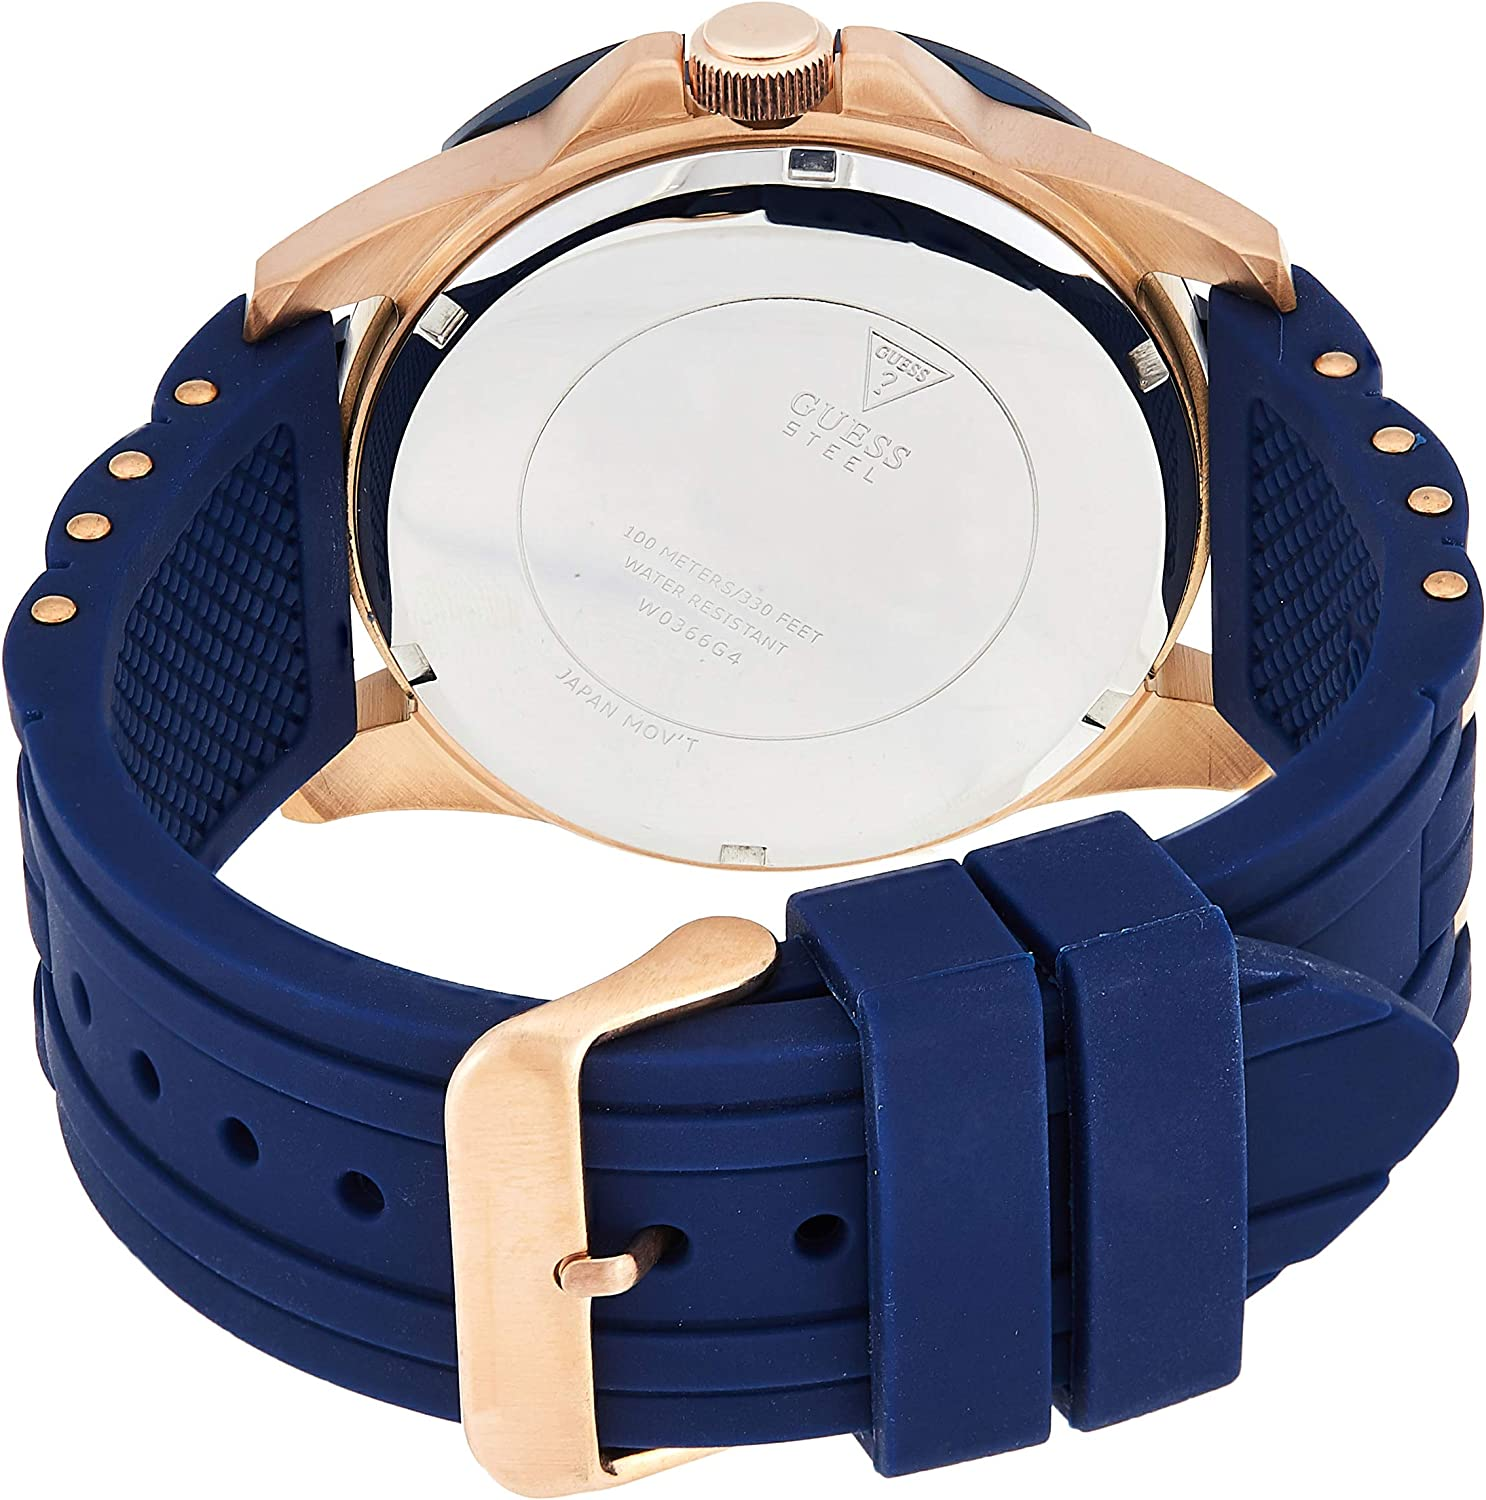 Guess Montre homme Sport steel silicone (W0366G4) taille Taille unique cm